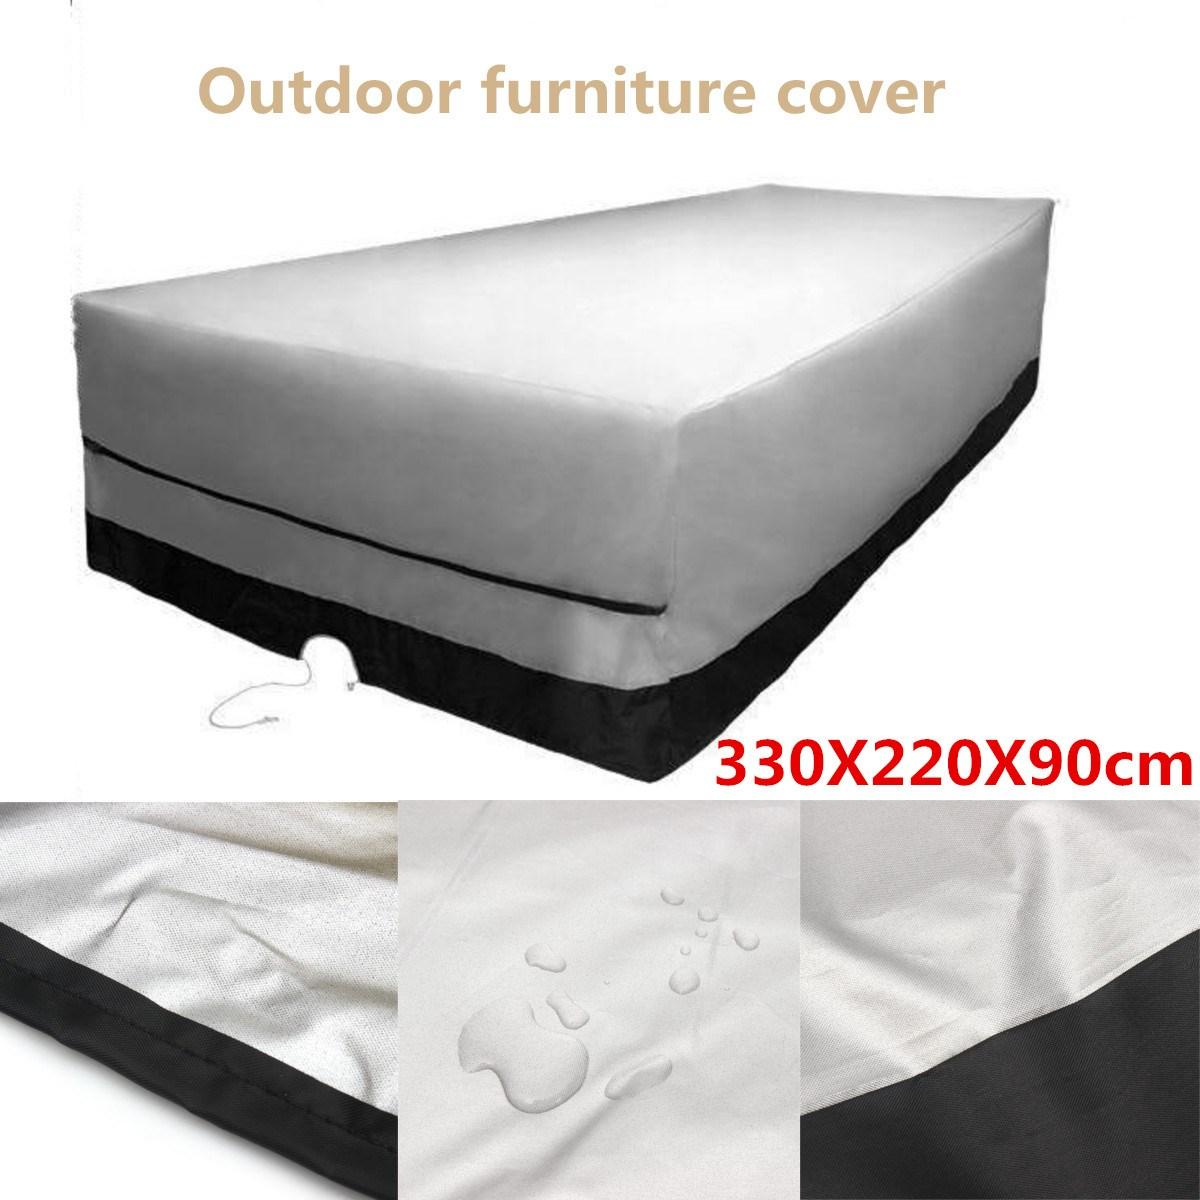 Outdoor Garden Furniture Cover 330X220X90cm Rect Patio Table Desk Chair Waterproof Black Color 600D Dust Rain UV Protection